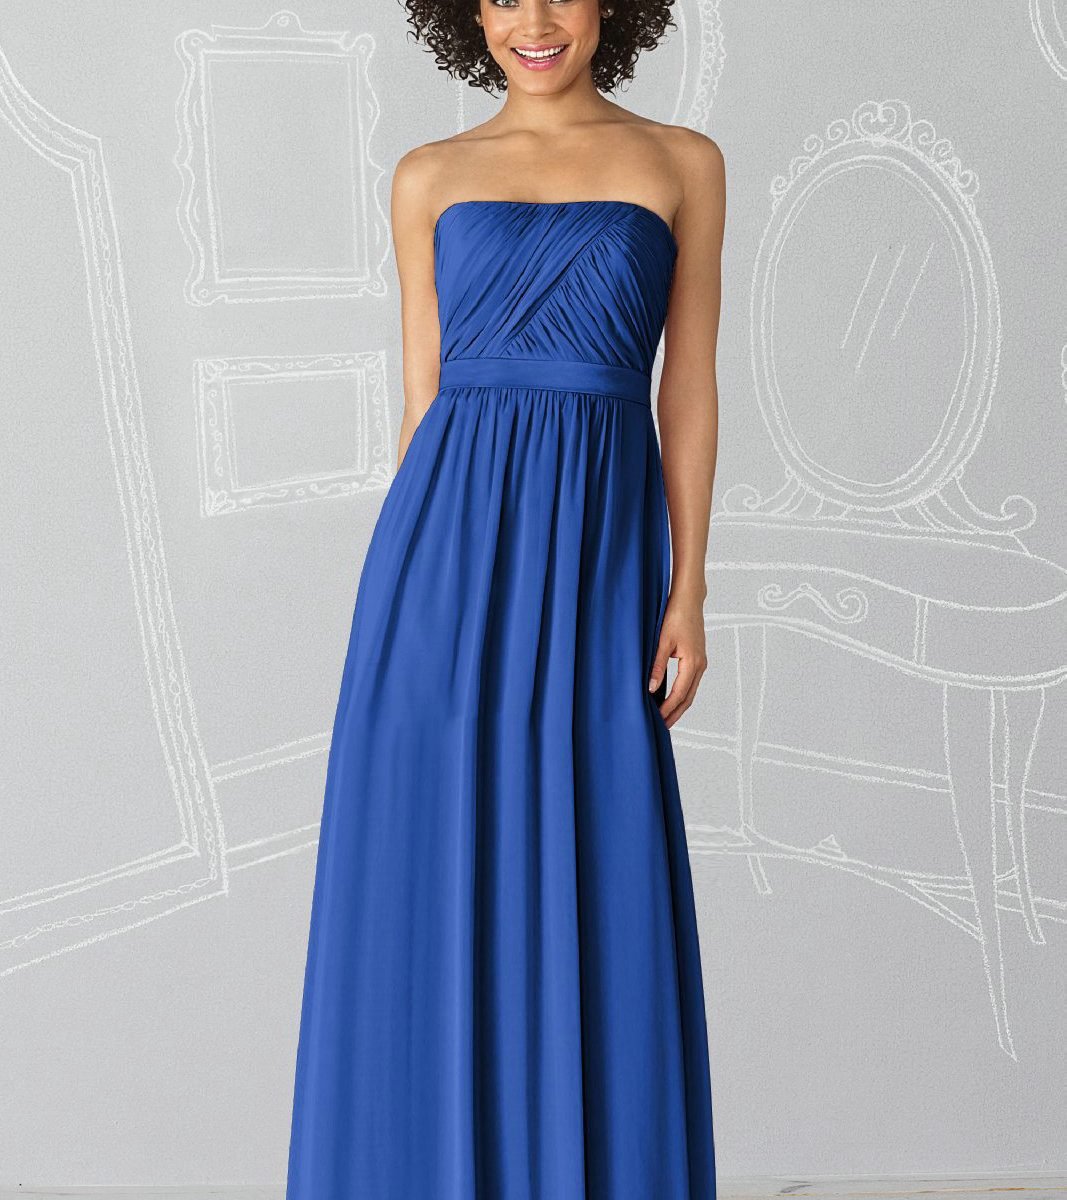 Simple blue strapless bridesmaid dresscherry marry for Marry me wedding dresses